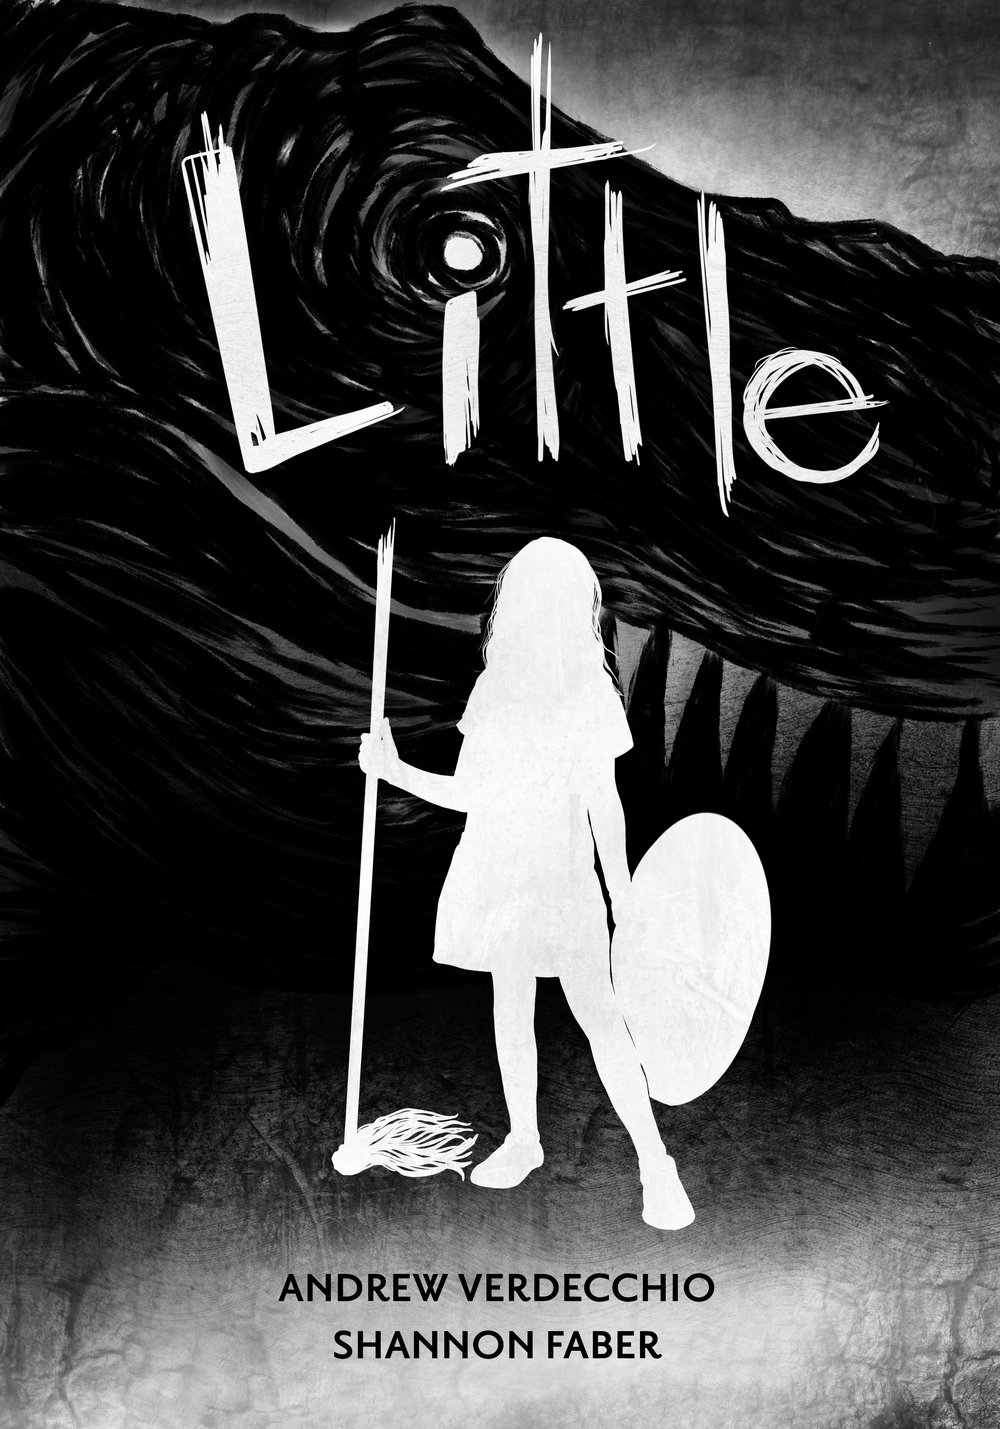 LITTLE - Release Date: February 11th 2019It's not wise to judge a book by its cover, as you and I are soon to discover.Little is a girl living life in her imagination when she is faced with her very own monster to defeat.Written in whimsical rhyme but rooted in a childhood nightmare, Little is a Grimmian story about facing and conquering the darkest of fears.Recommended for ages 8+Paperback, 32 pages©2019 INK & TEA